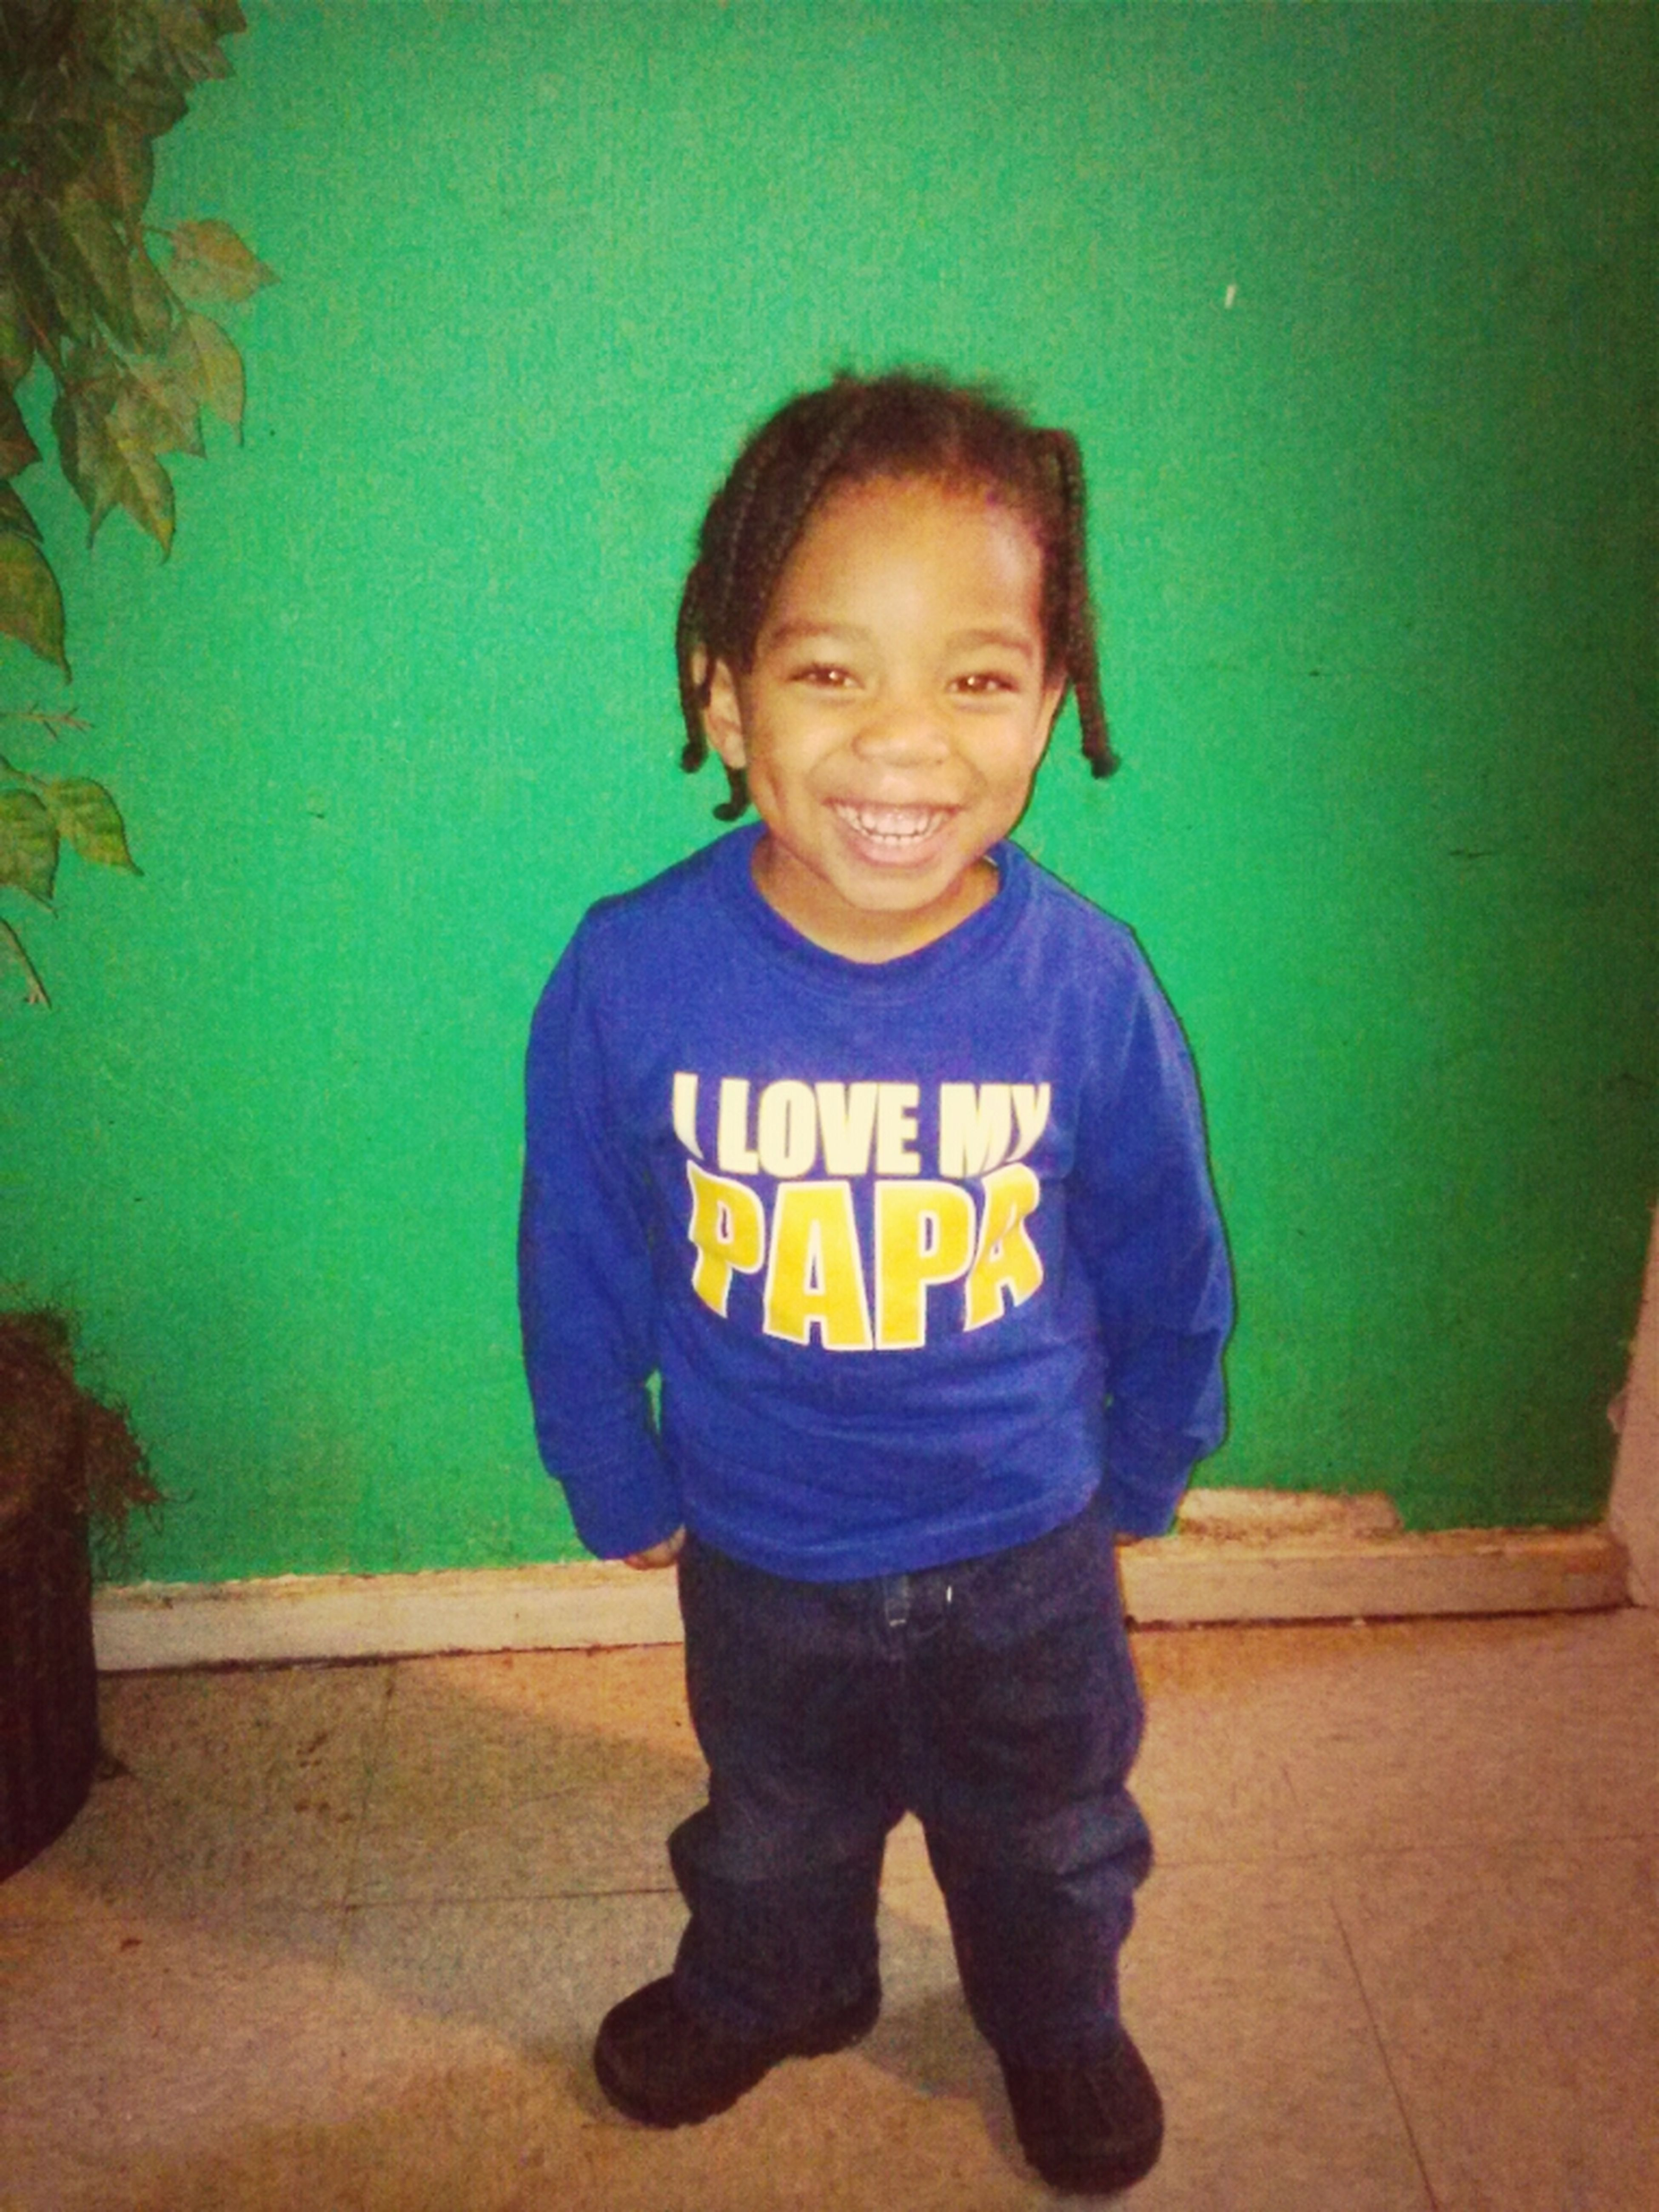 Lil Brother : )